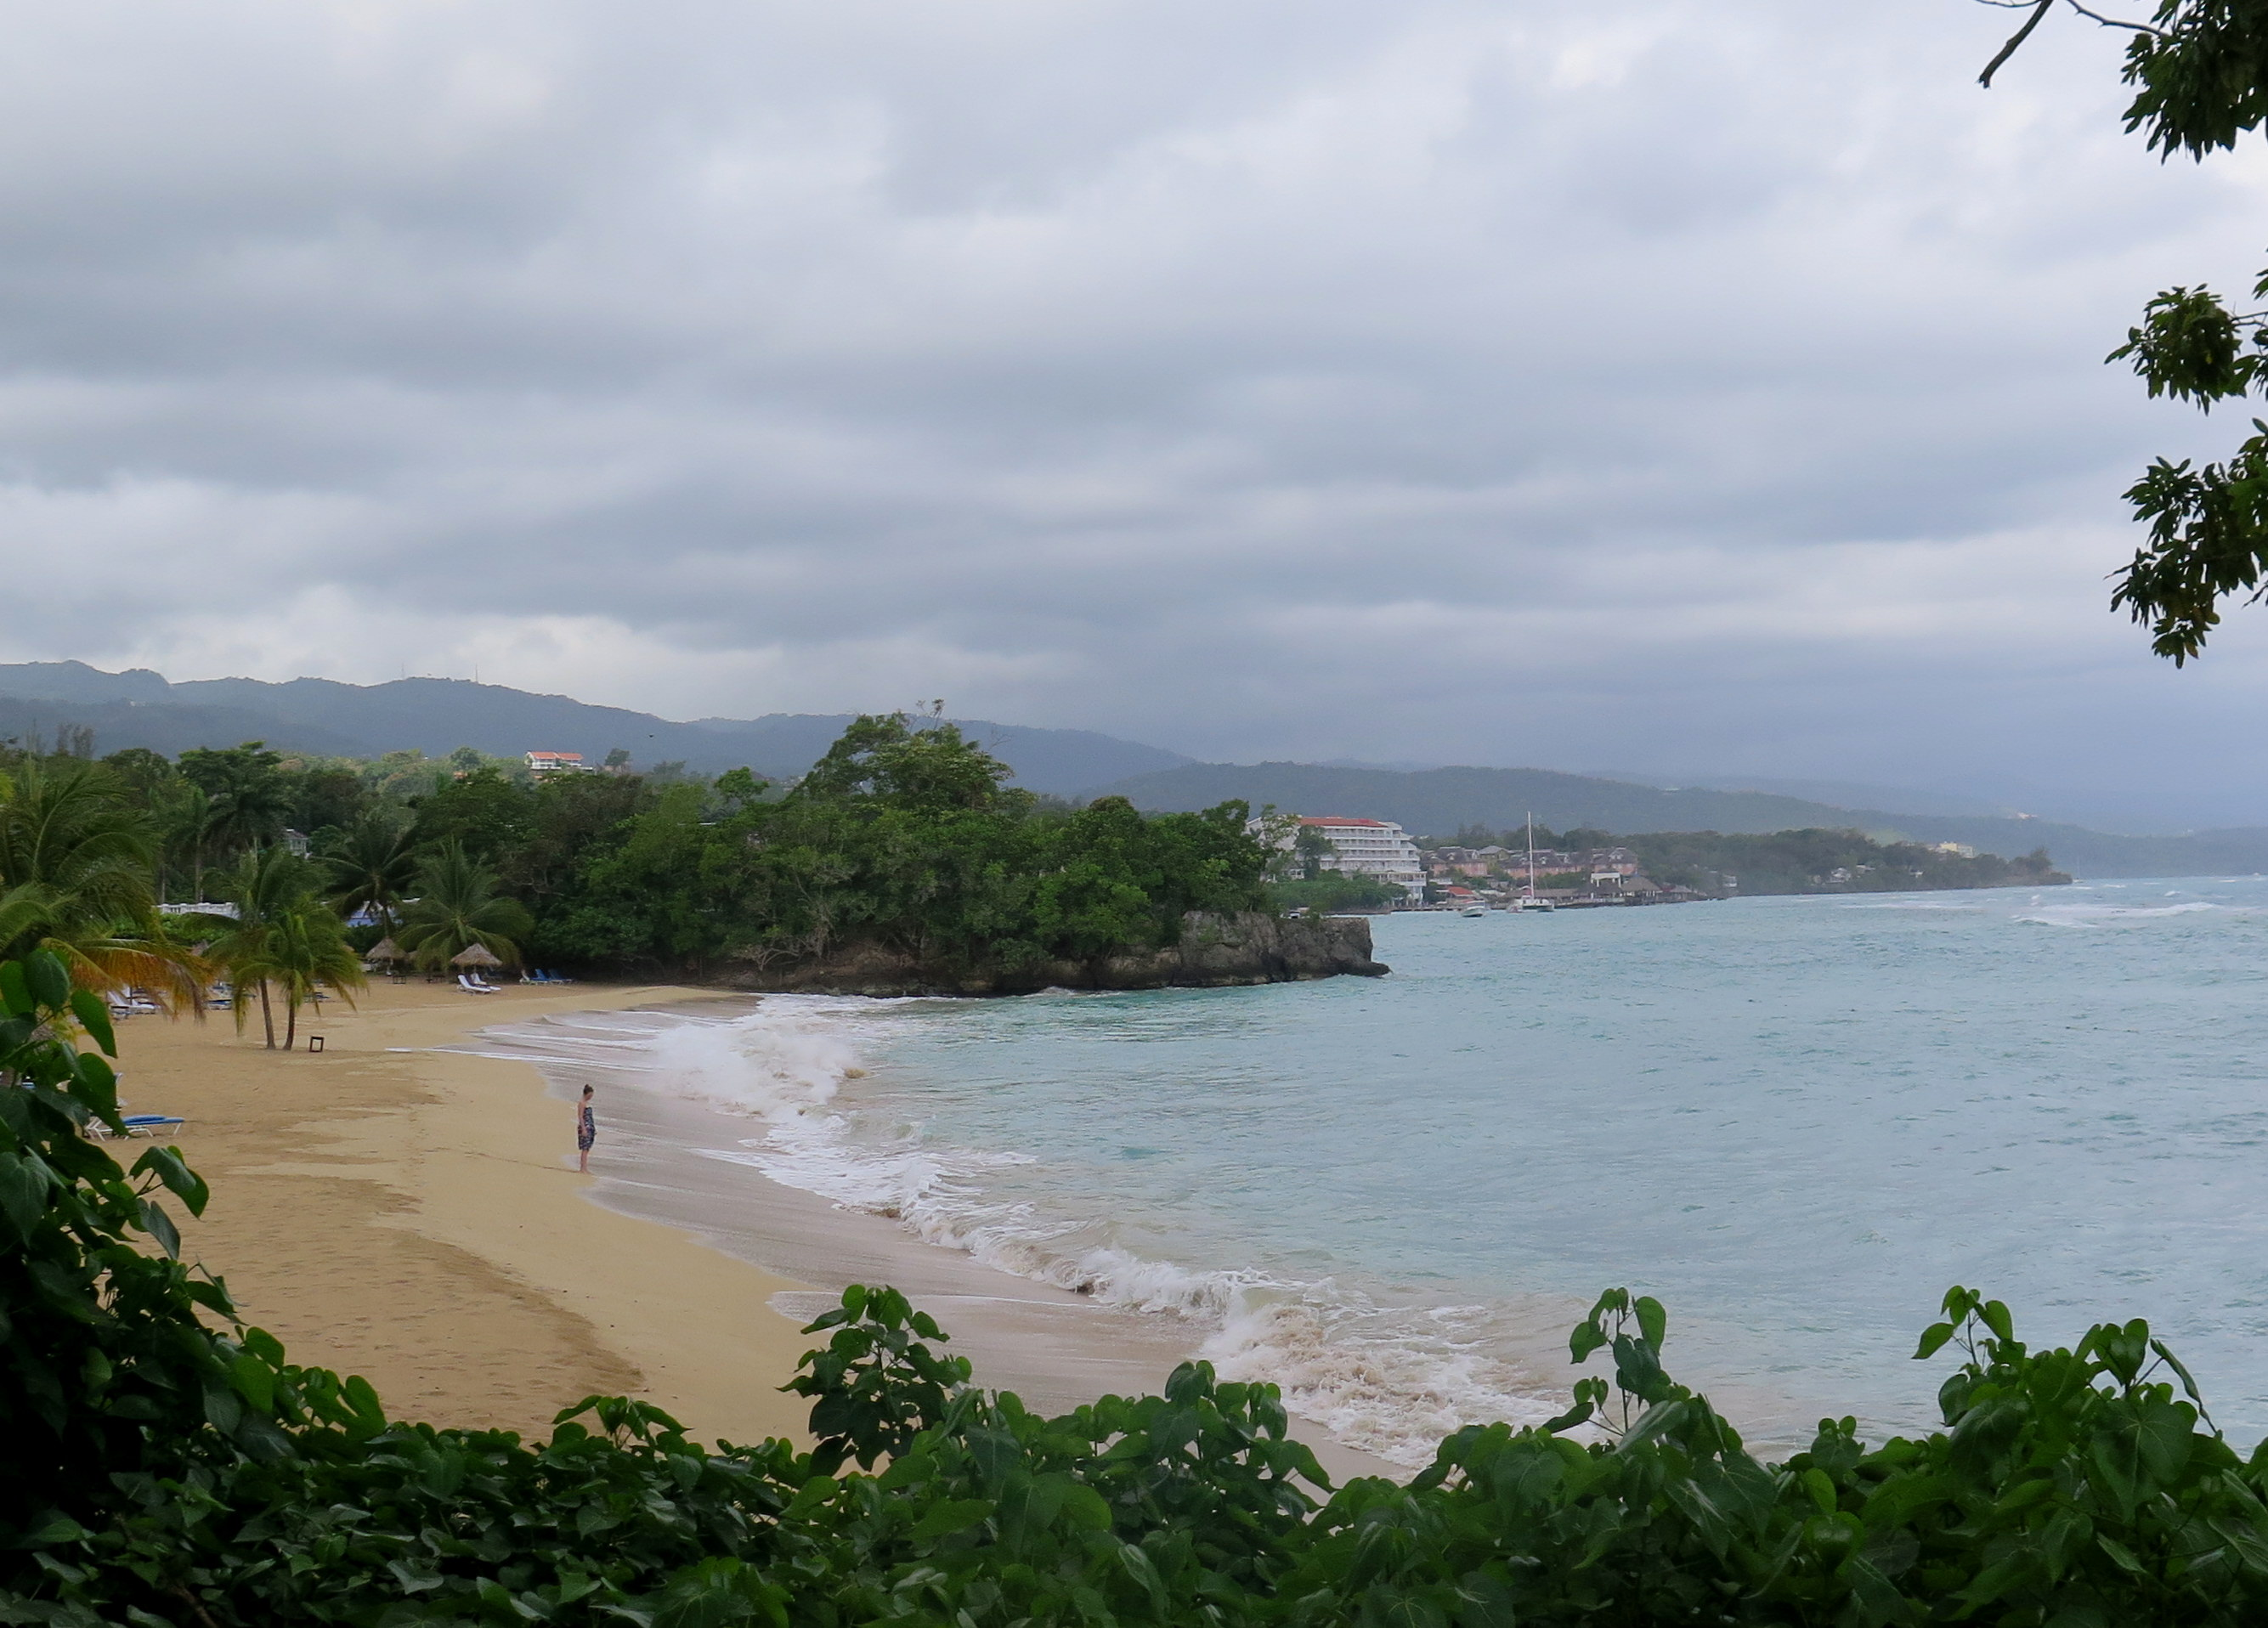 The beach at the Jamaica Inn in Ocho Rios is vastly superior to Negril.